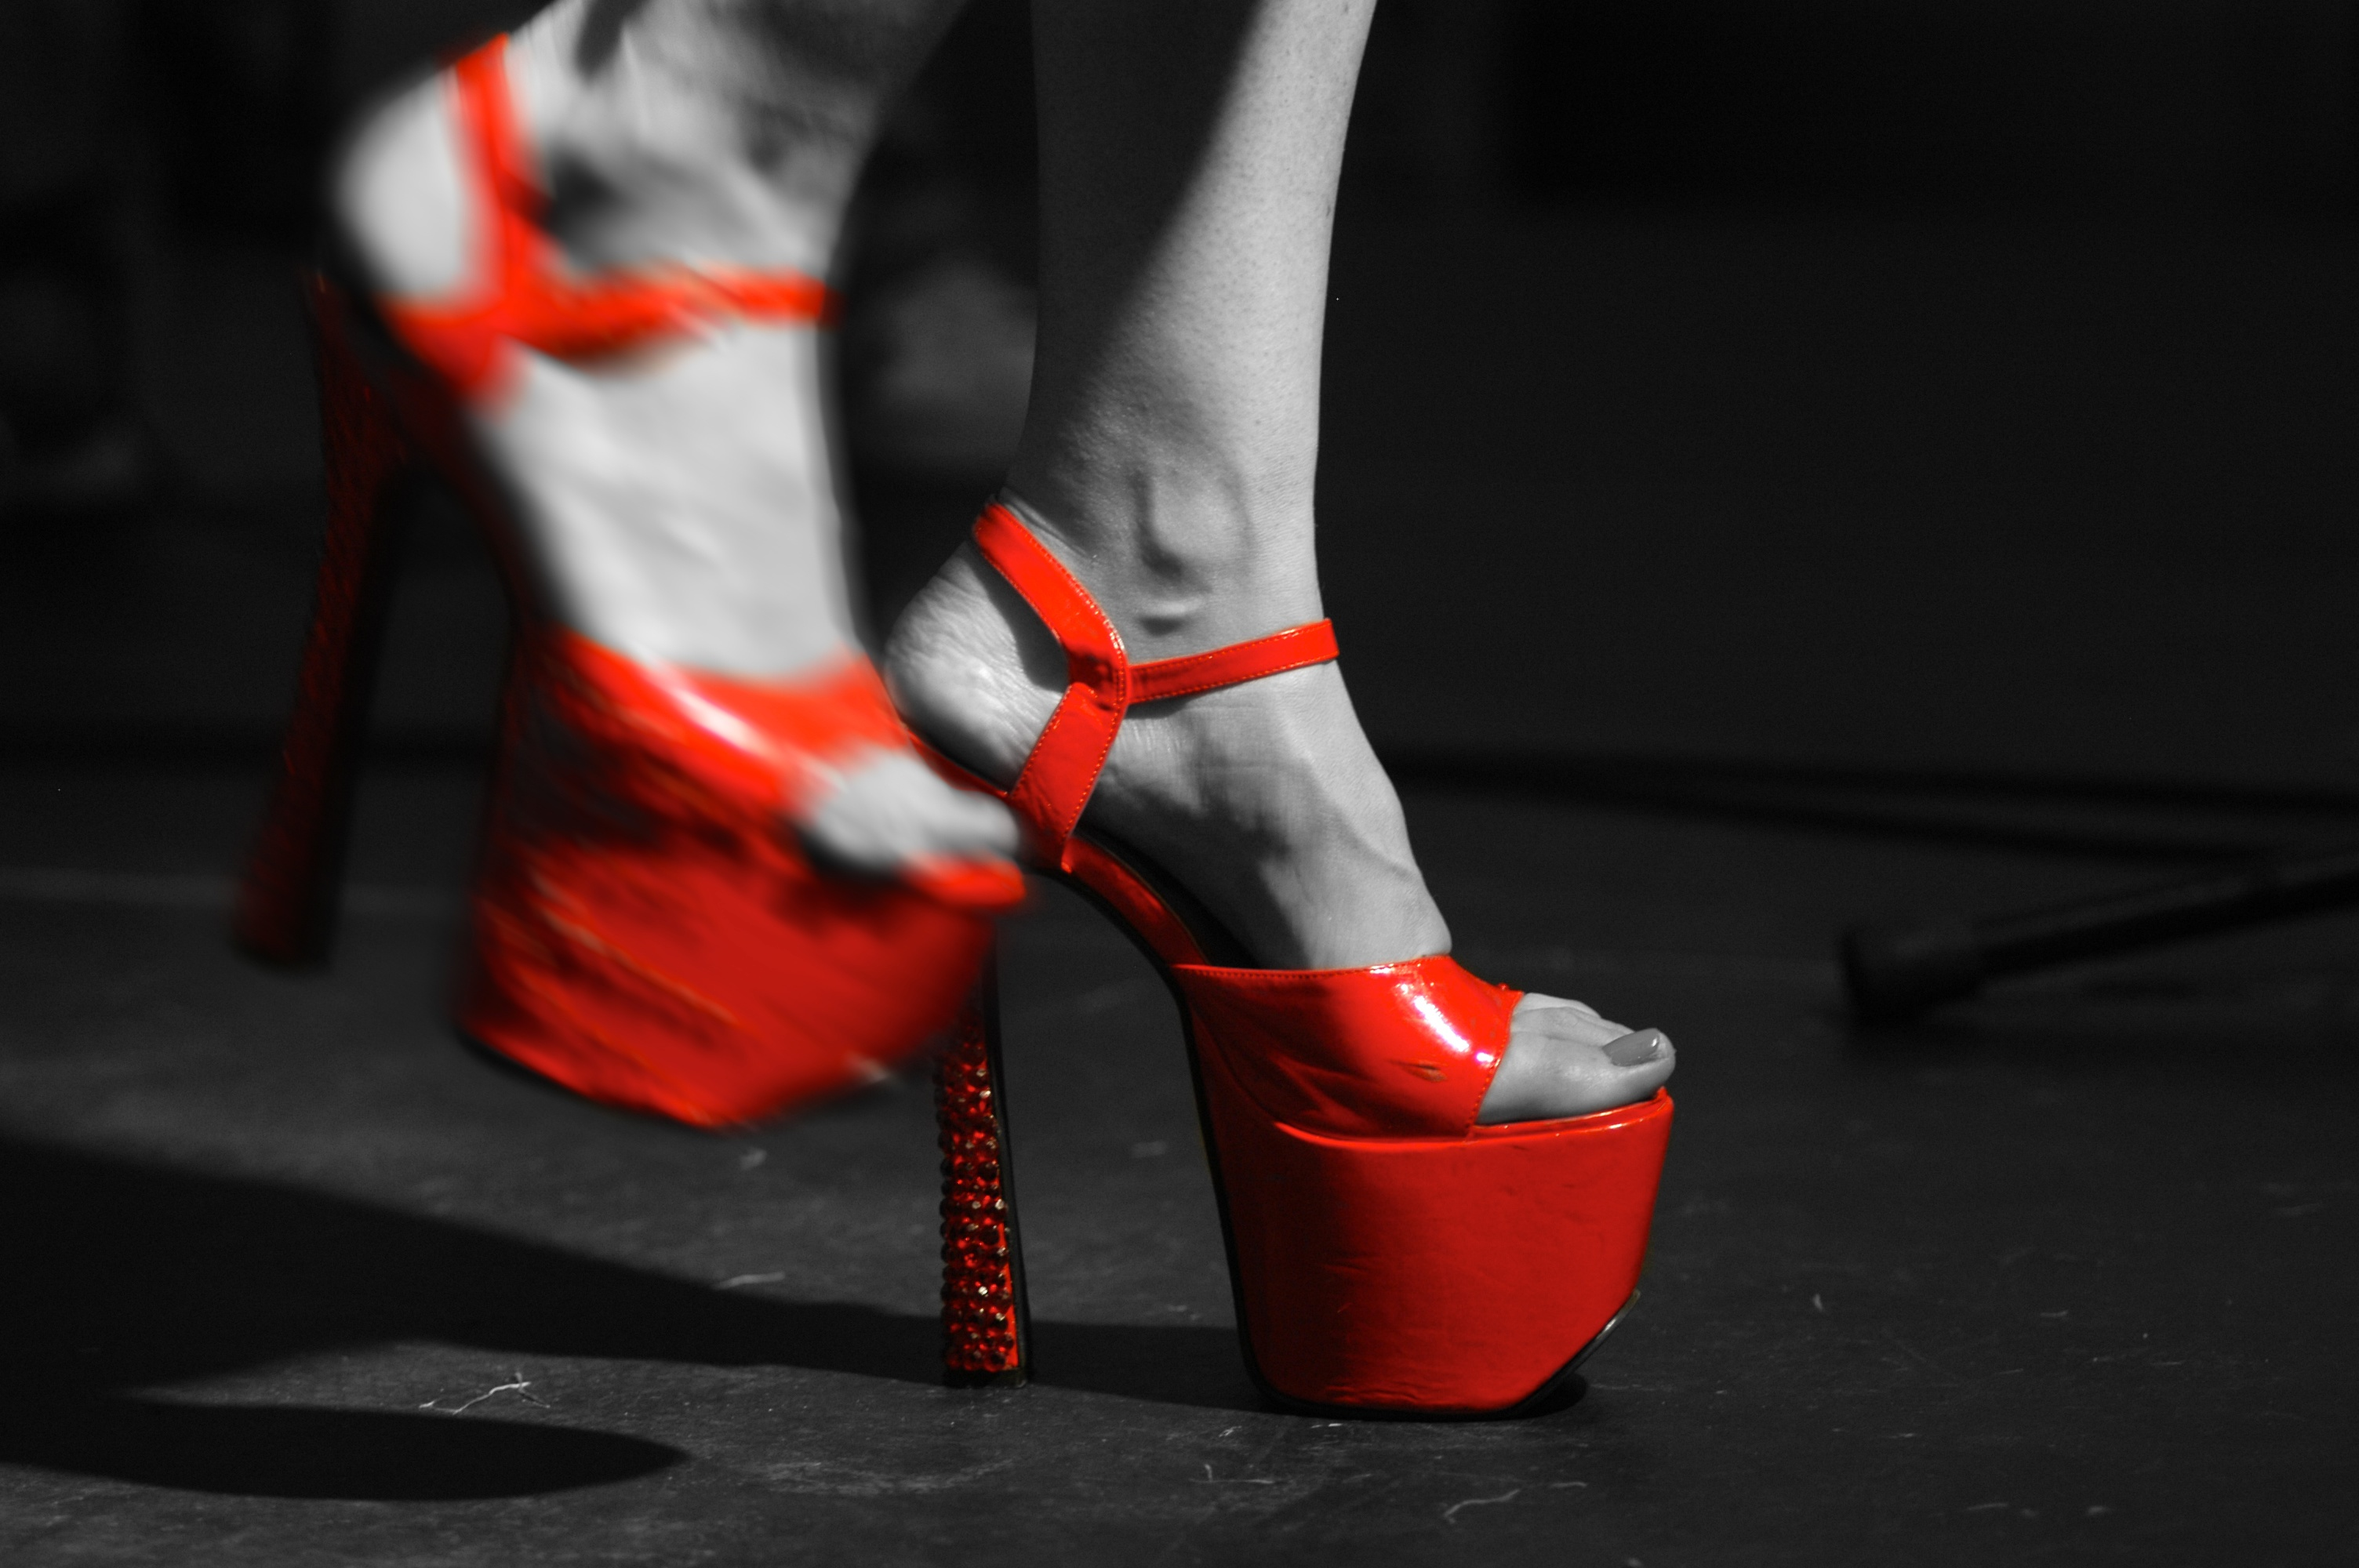 Live: Killer Heels shoes © Dave Arcari